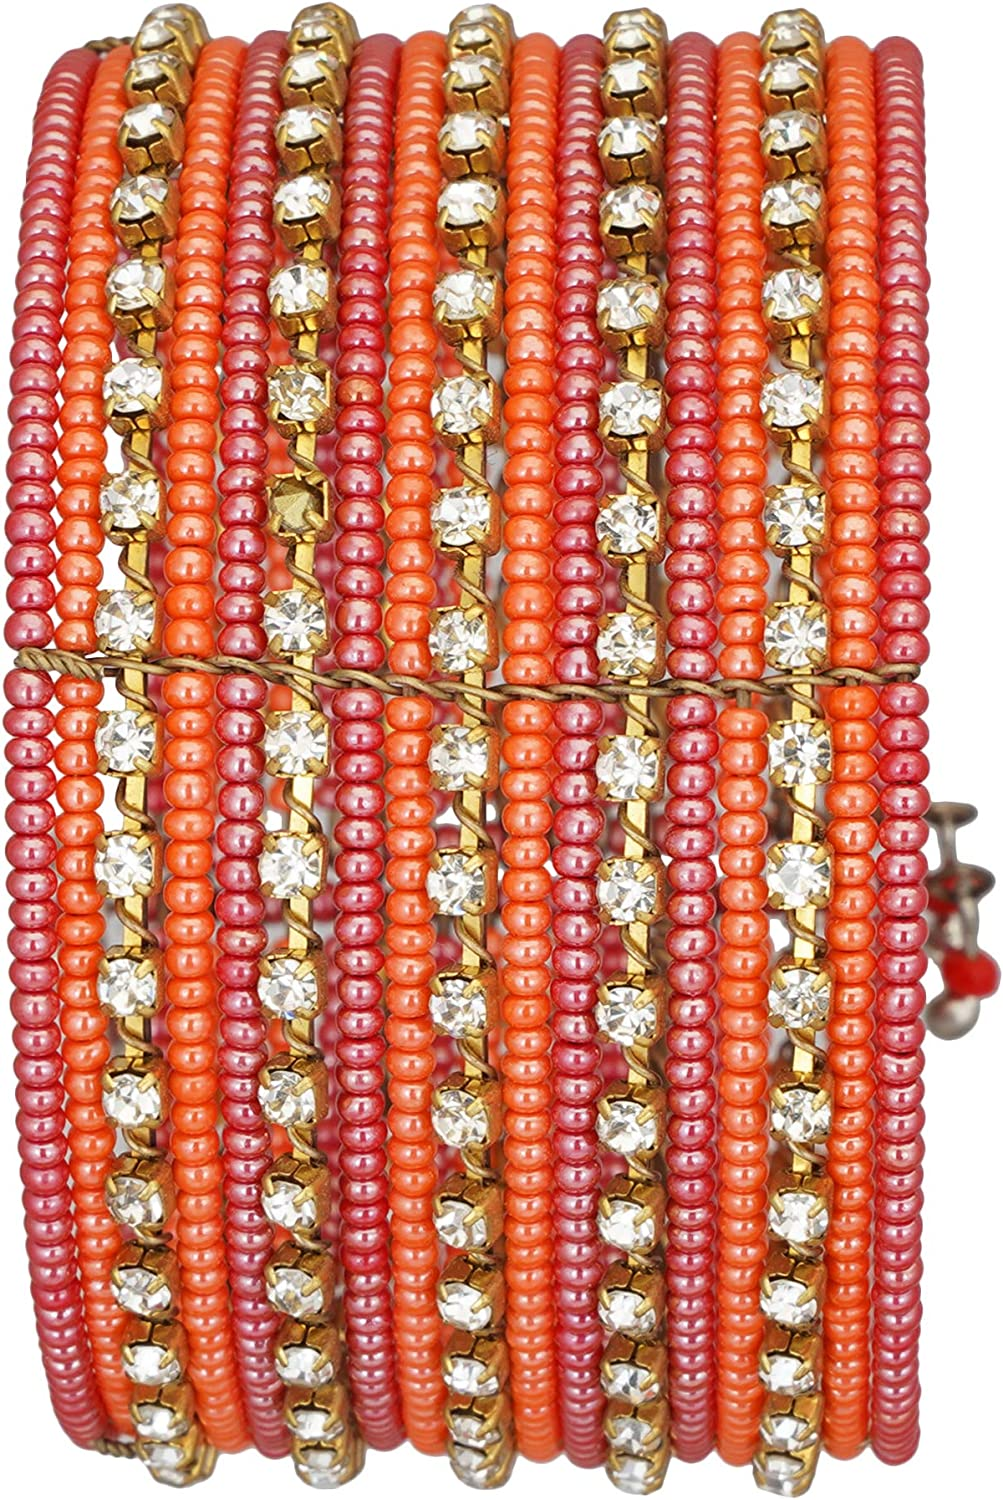 El Allure Glass Seed Bead Red, Orange and Gold Spiral Adjustable Partywear Trendy Handicraft Indian Style Bangle with Big Zircon Stone Fine Bangle for Women